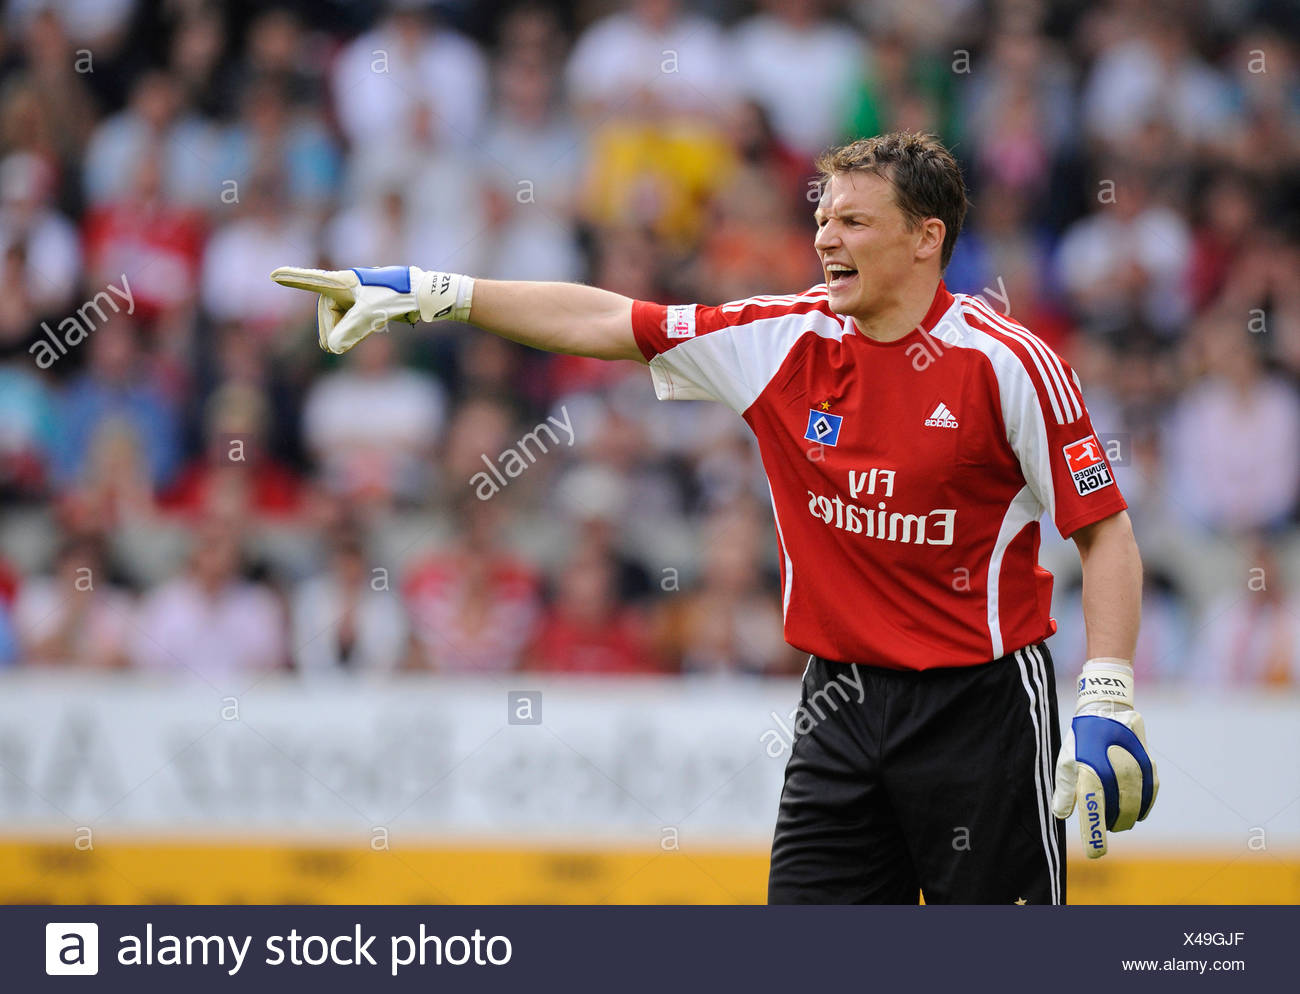 Goalkeeper Frank Rost, German footballer playing for HSV, Hamburger SV, ordering defense - Stock Image